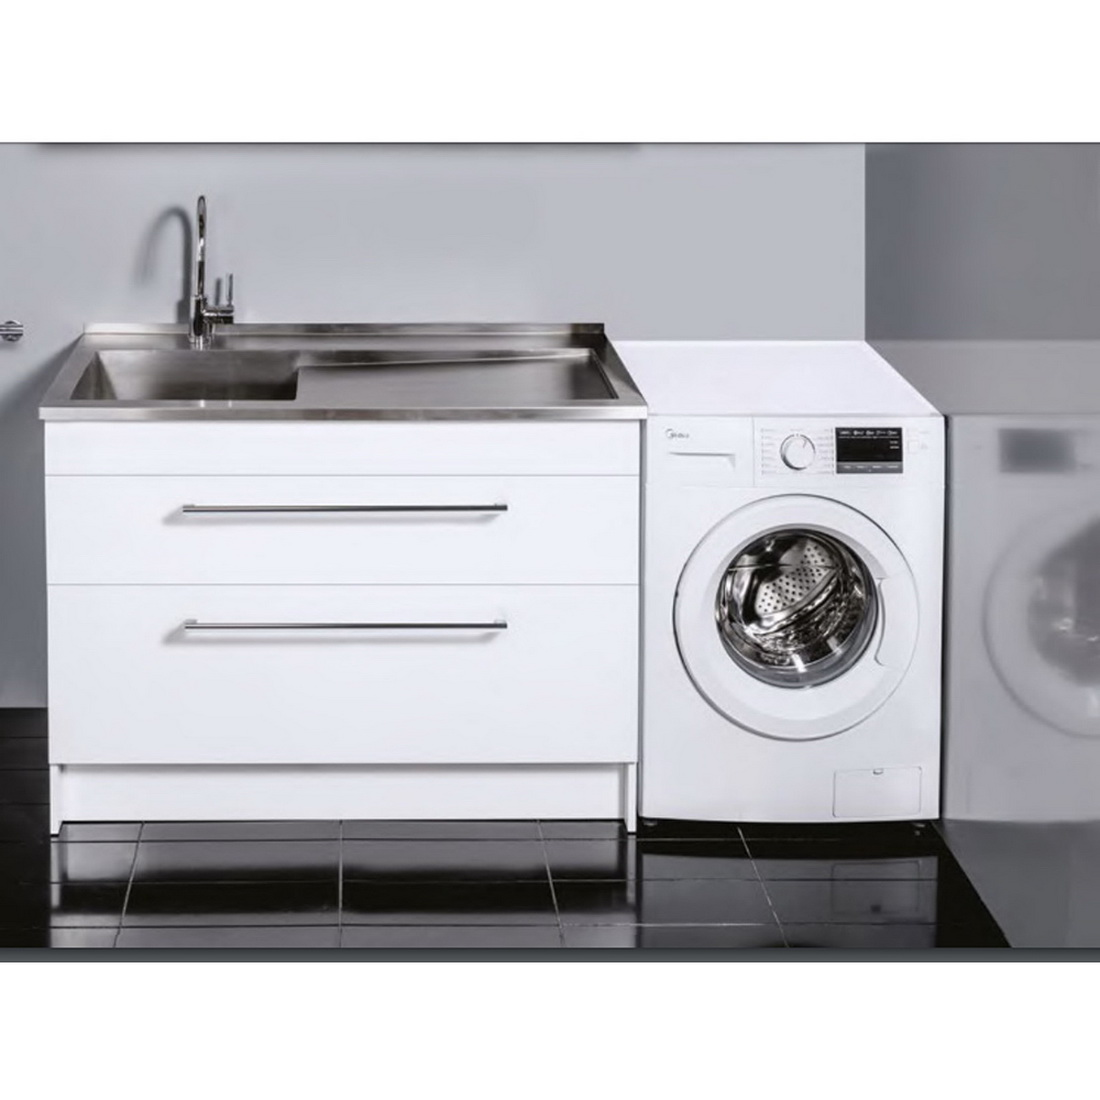 1200x920x600mm Horoi Laundry Cabinet with Tub Stainless Steel Top Timber White